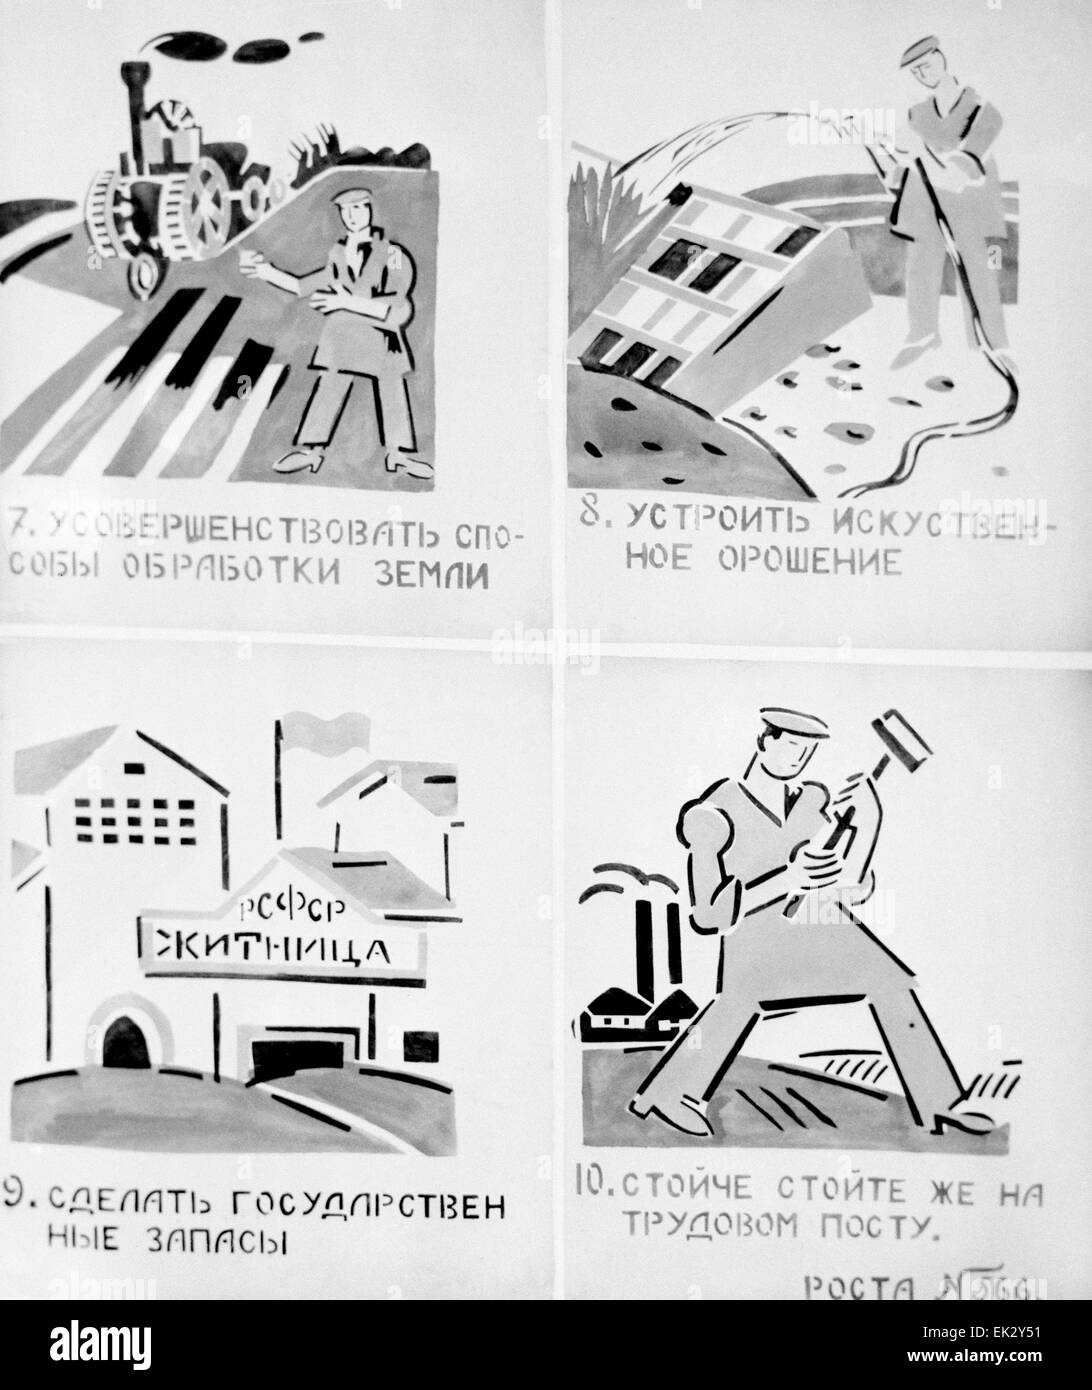 Moscow. RSFSR. One of the Rosta Windows Okna Rosta propaganda posters created by Vladimir Mayakovsky, Mikhail Cheremnykh, - Stock Image